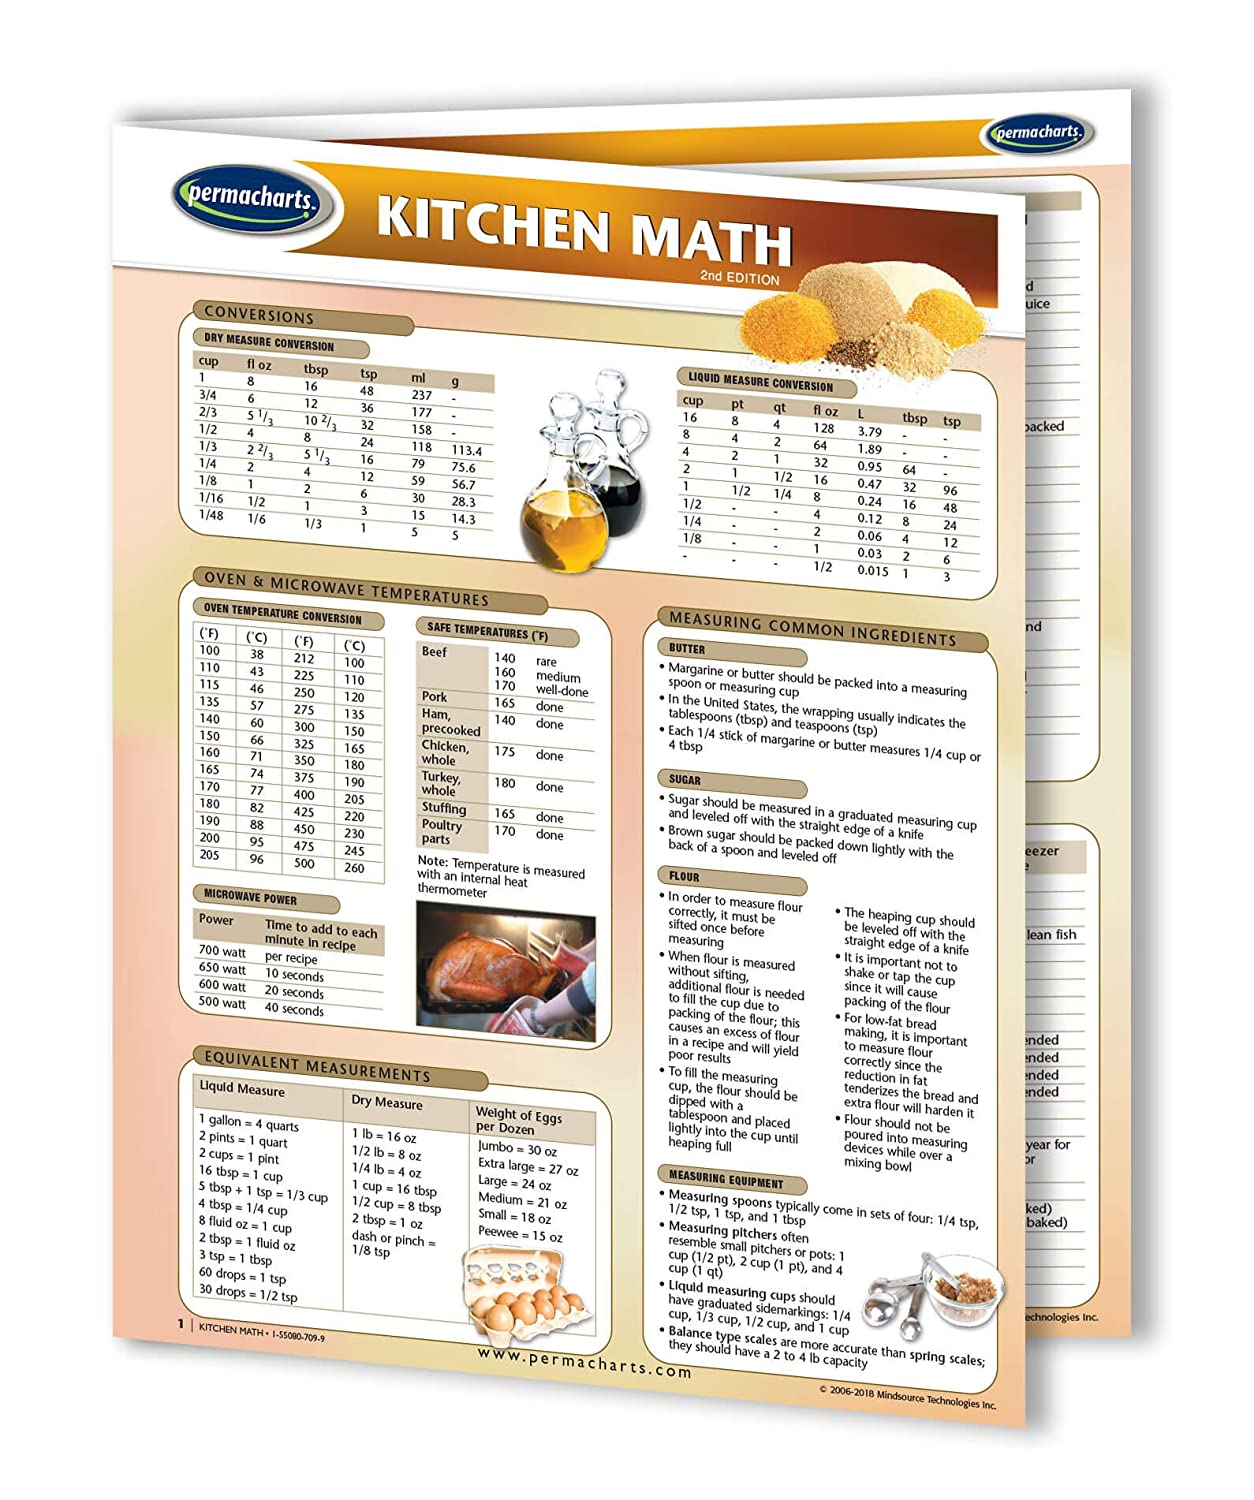 Kitchen Math Guide - Food and Drink Quick Reference Guide by Permacharts